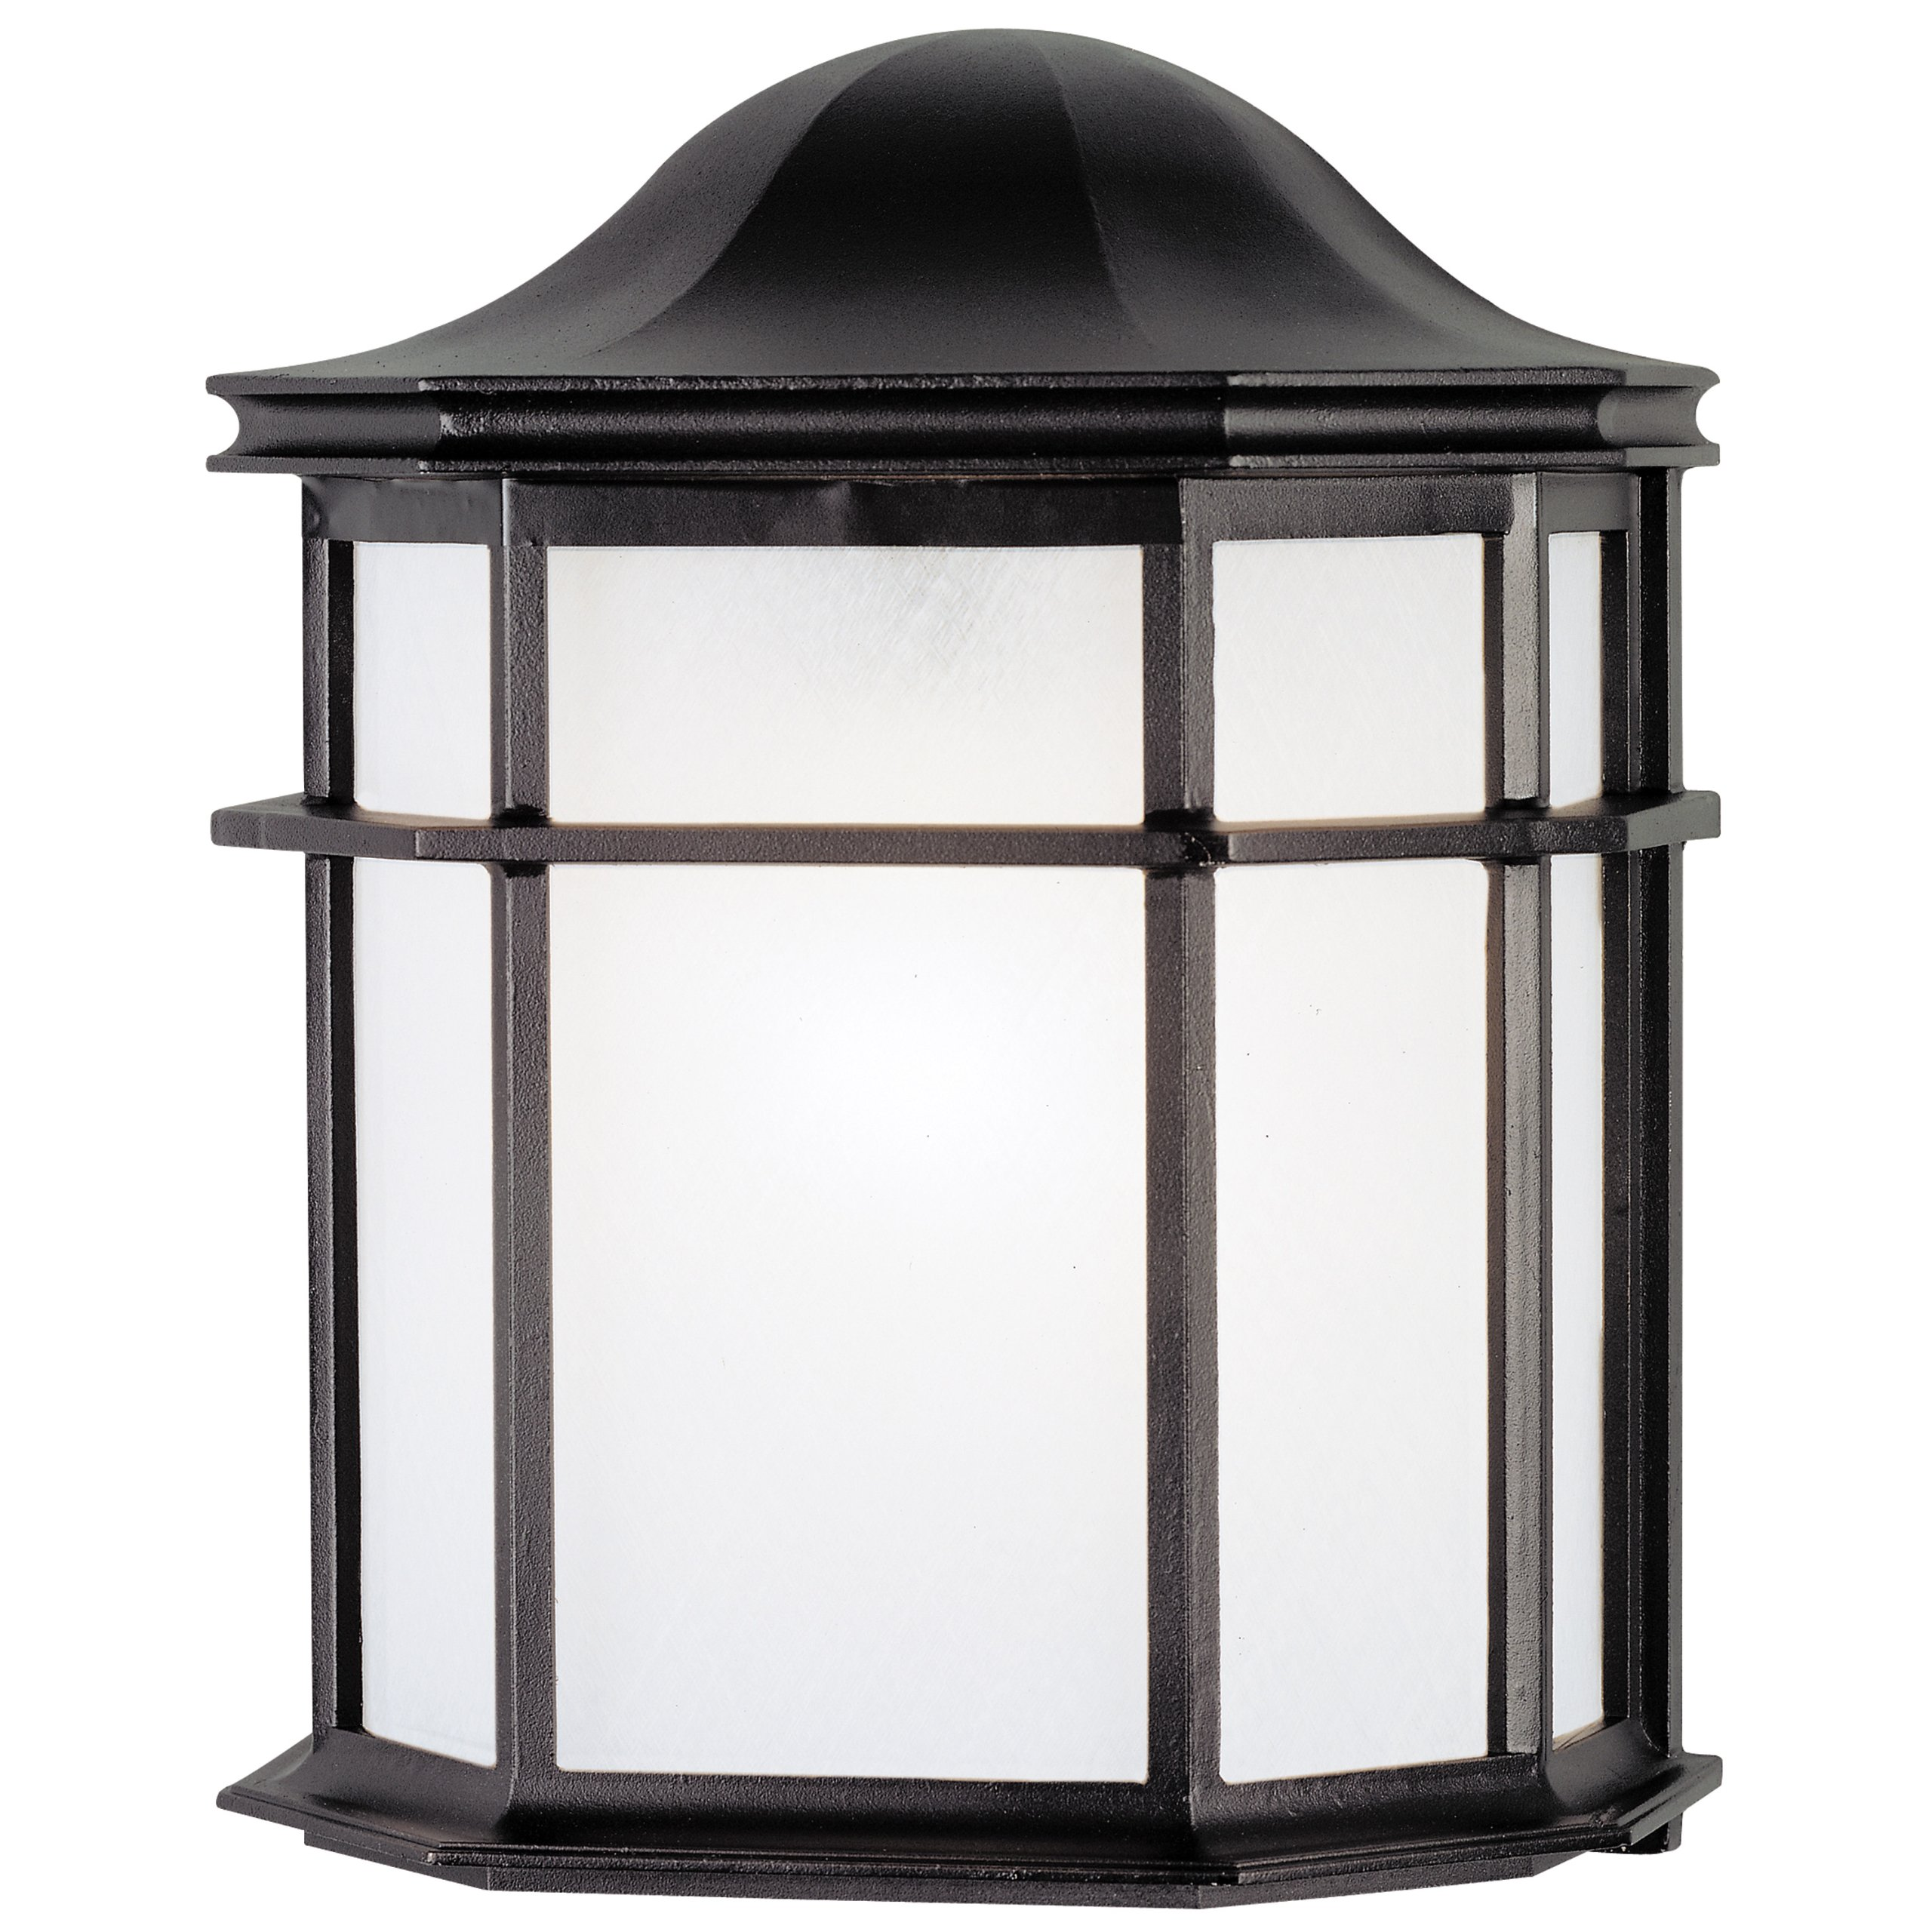 Westinghouse 6689800 One-Light Exterior Wall Lantern, Textured Black Finish on Cast Aluminum with White Acrylic Lens